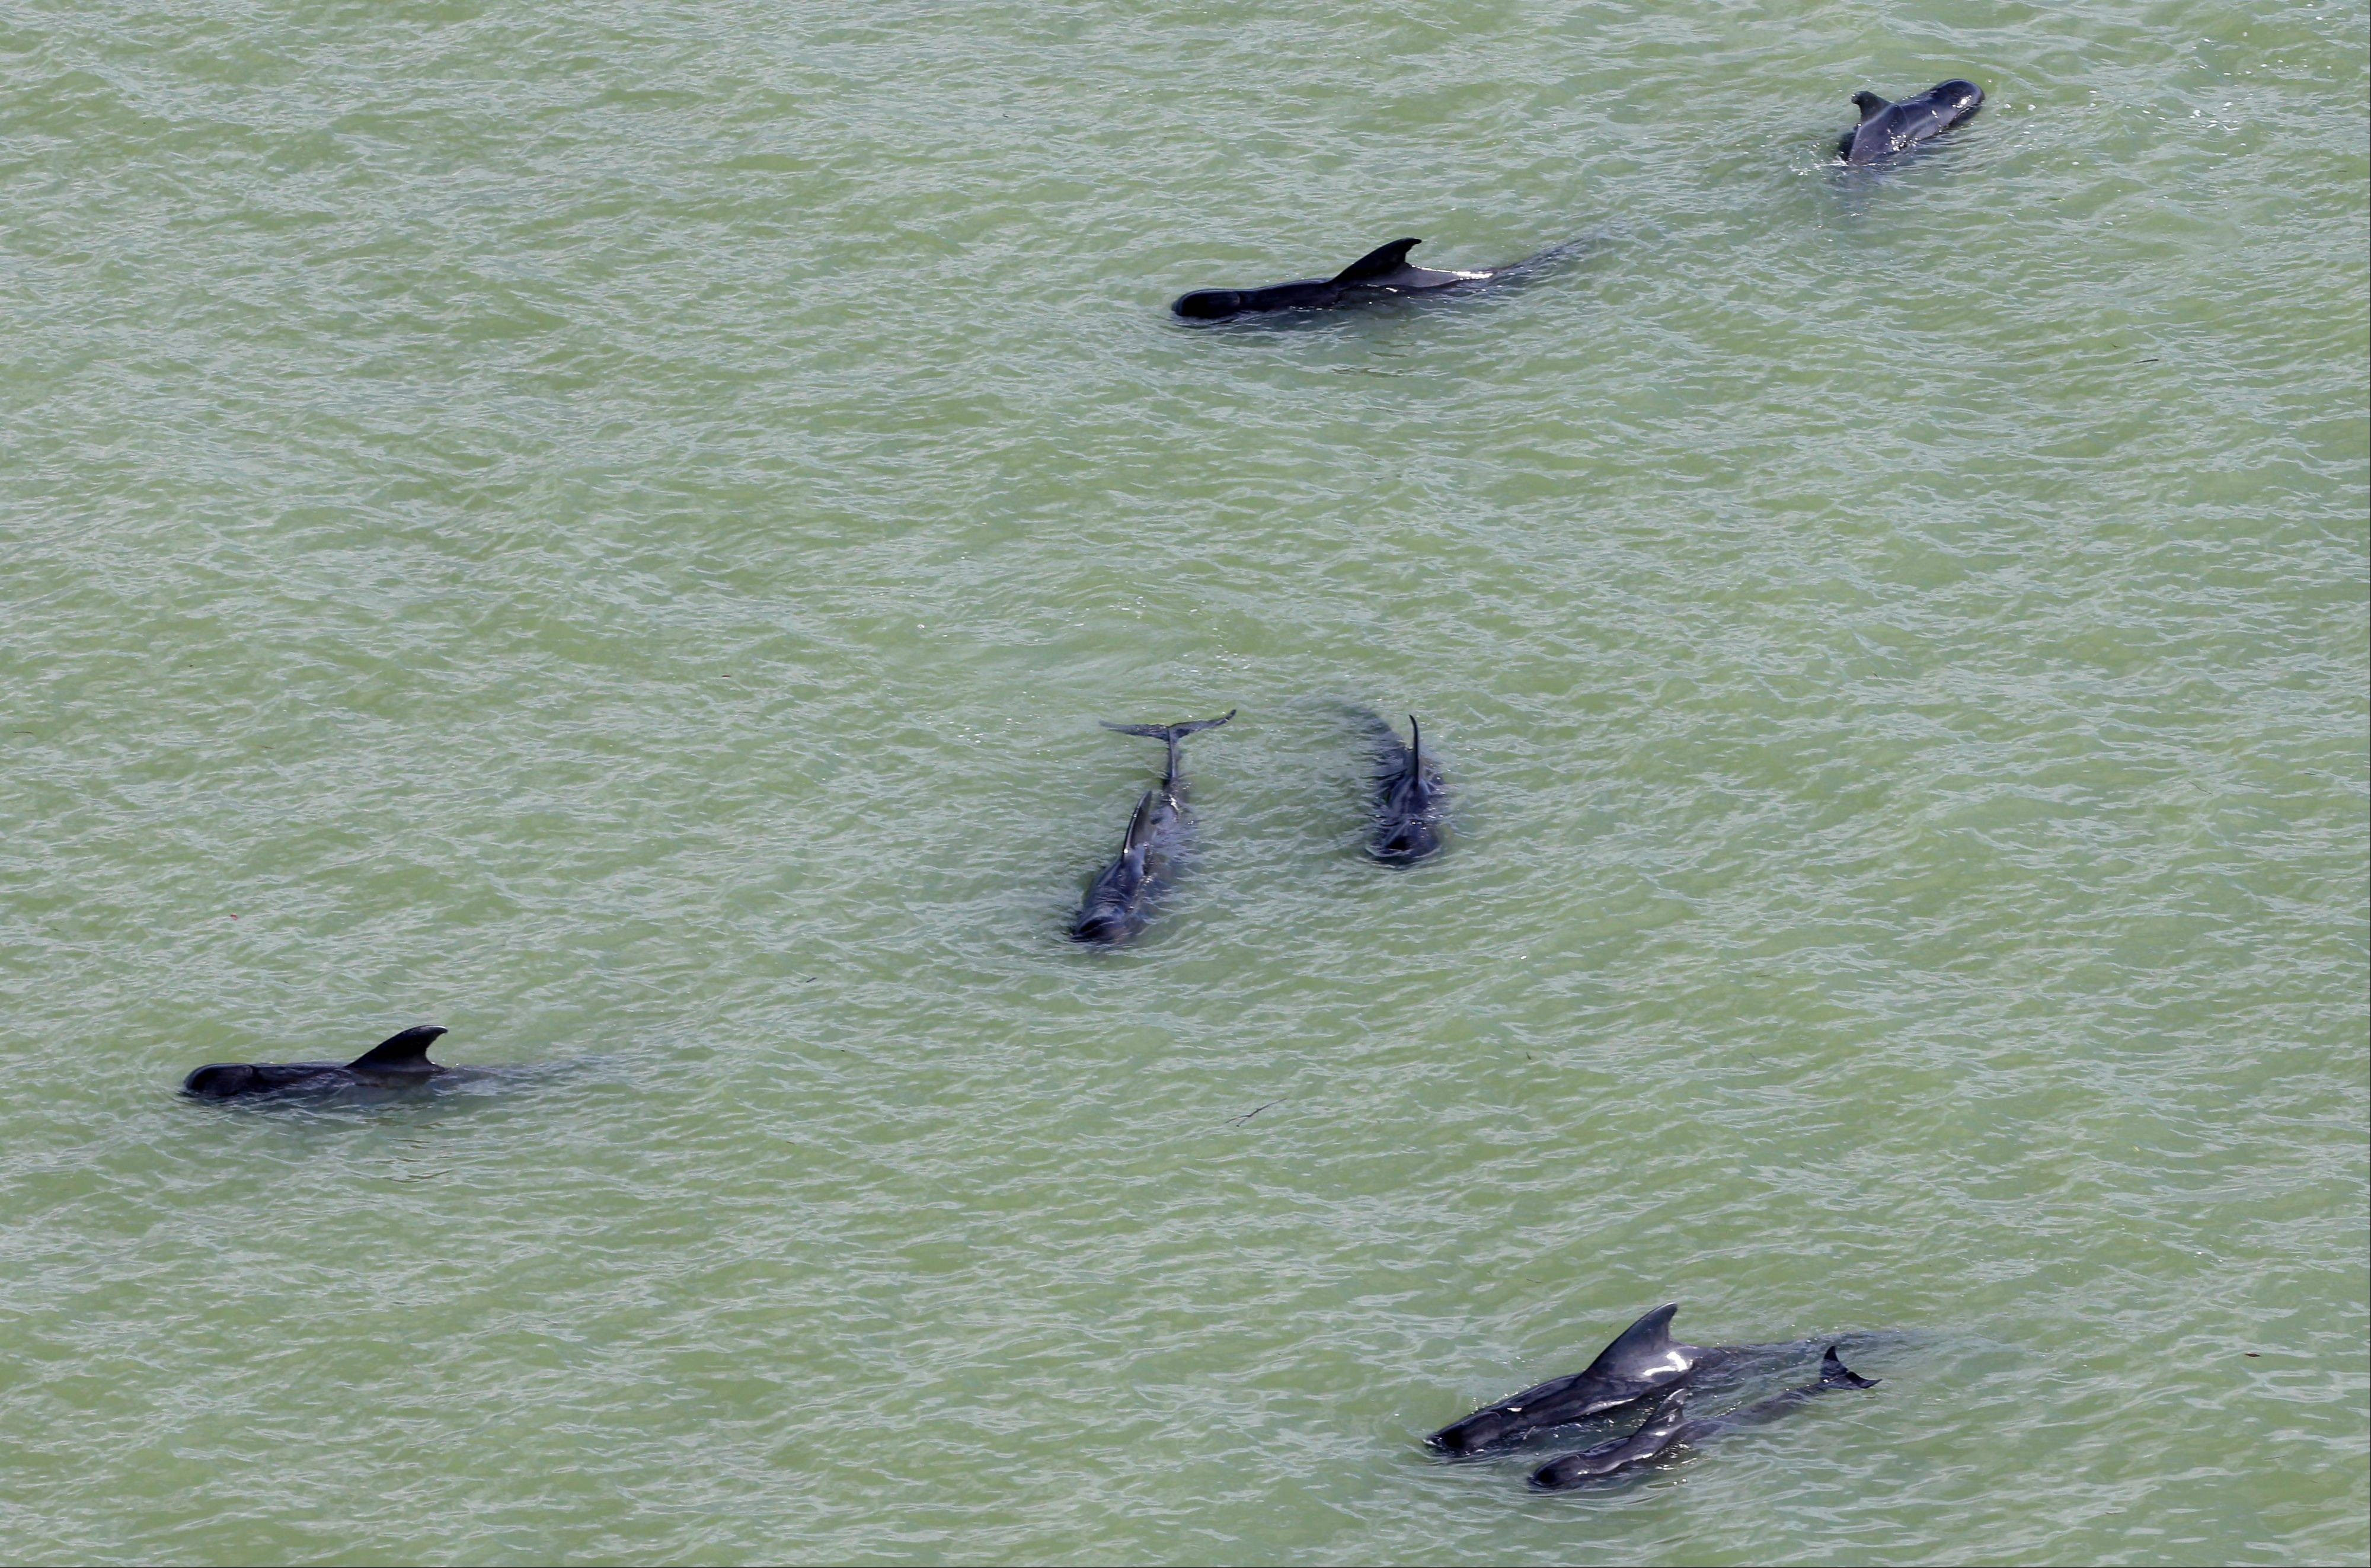 Dozens of pilot whales are stranded in shallow water in a remote area of Florida's Everglades National Park on Dec. 4.